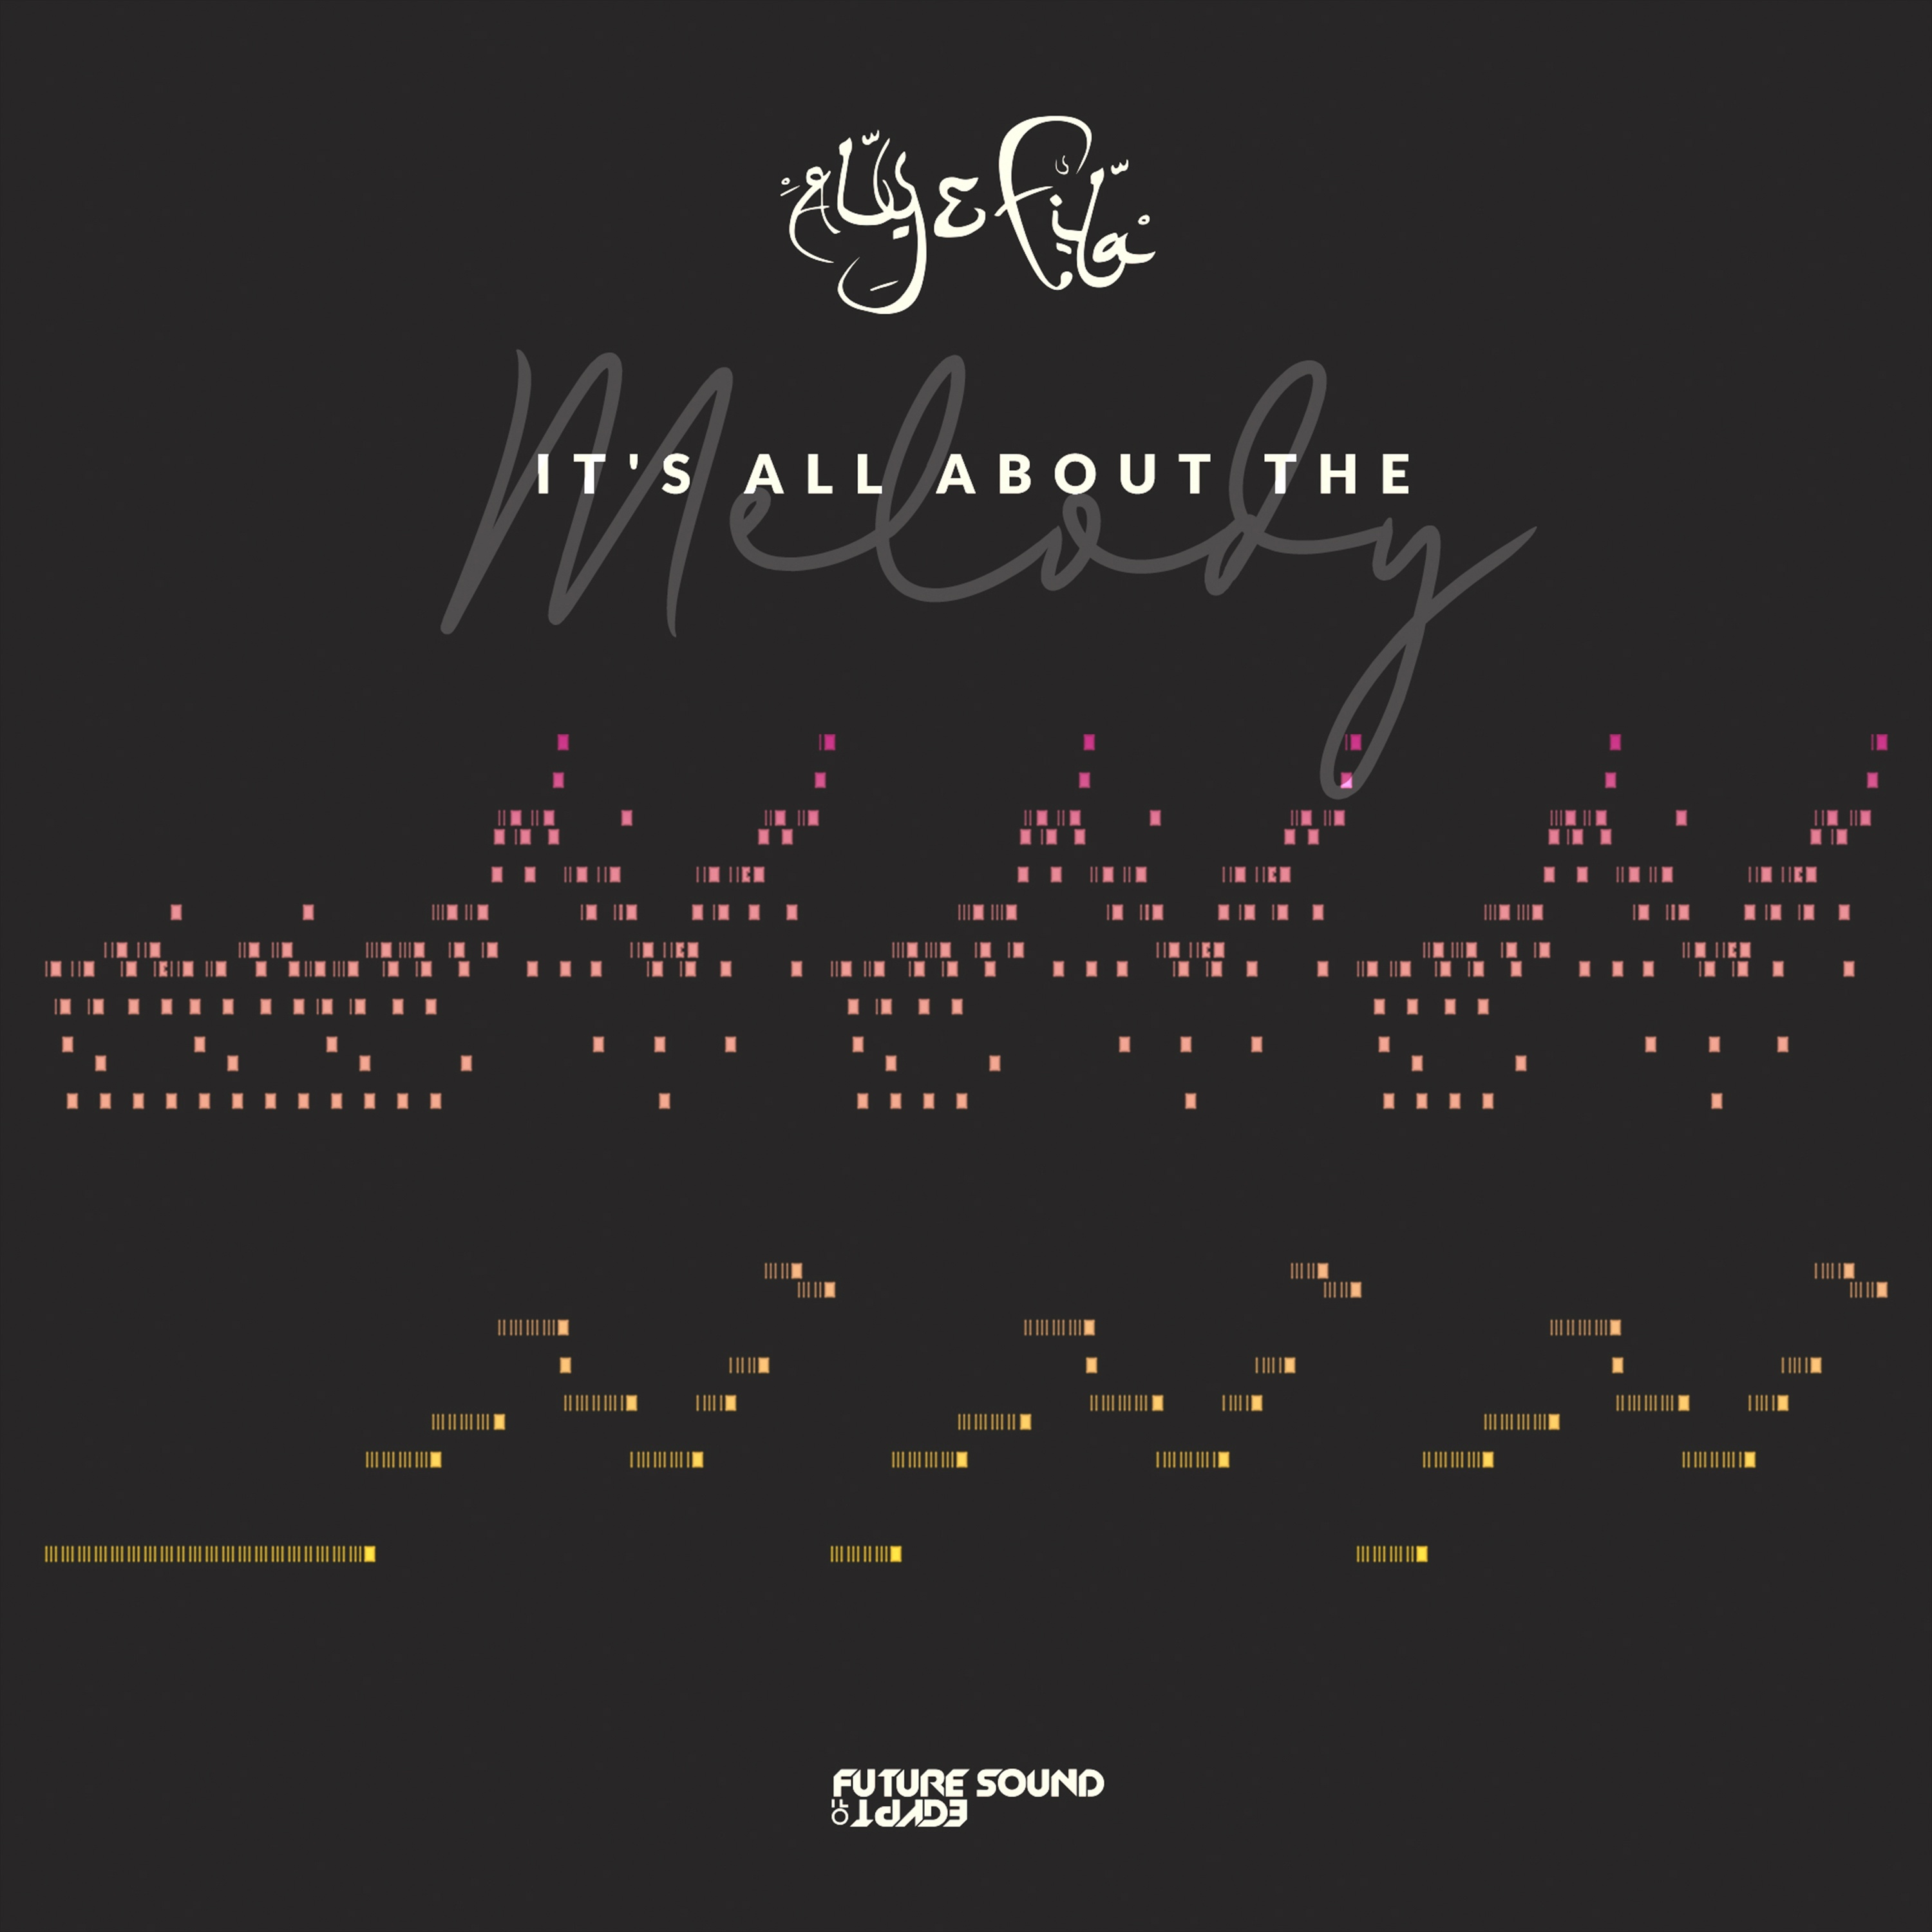 ALY & FILA RELEASE FIRST SINGLE FROM THEIR SIXTH ARTIST ALBUM - 'IT'S ALL ABOUT THE MELODY'